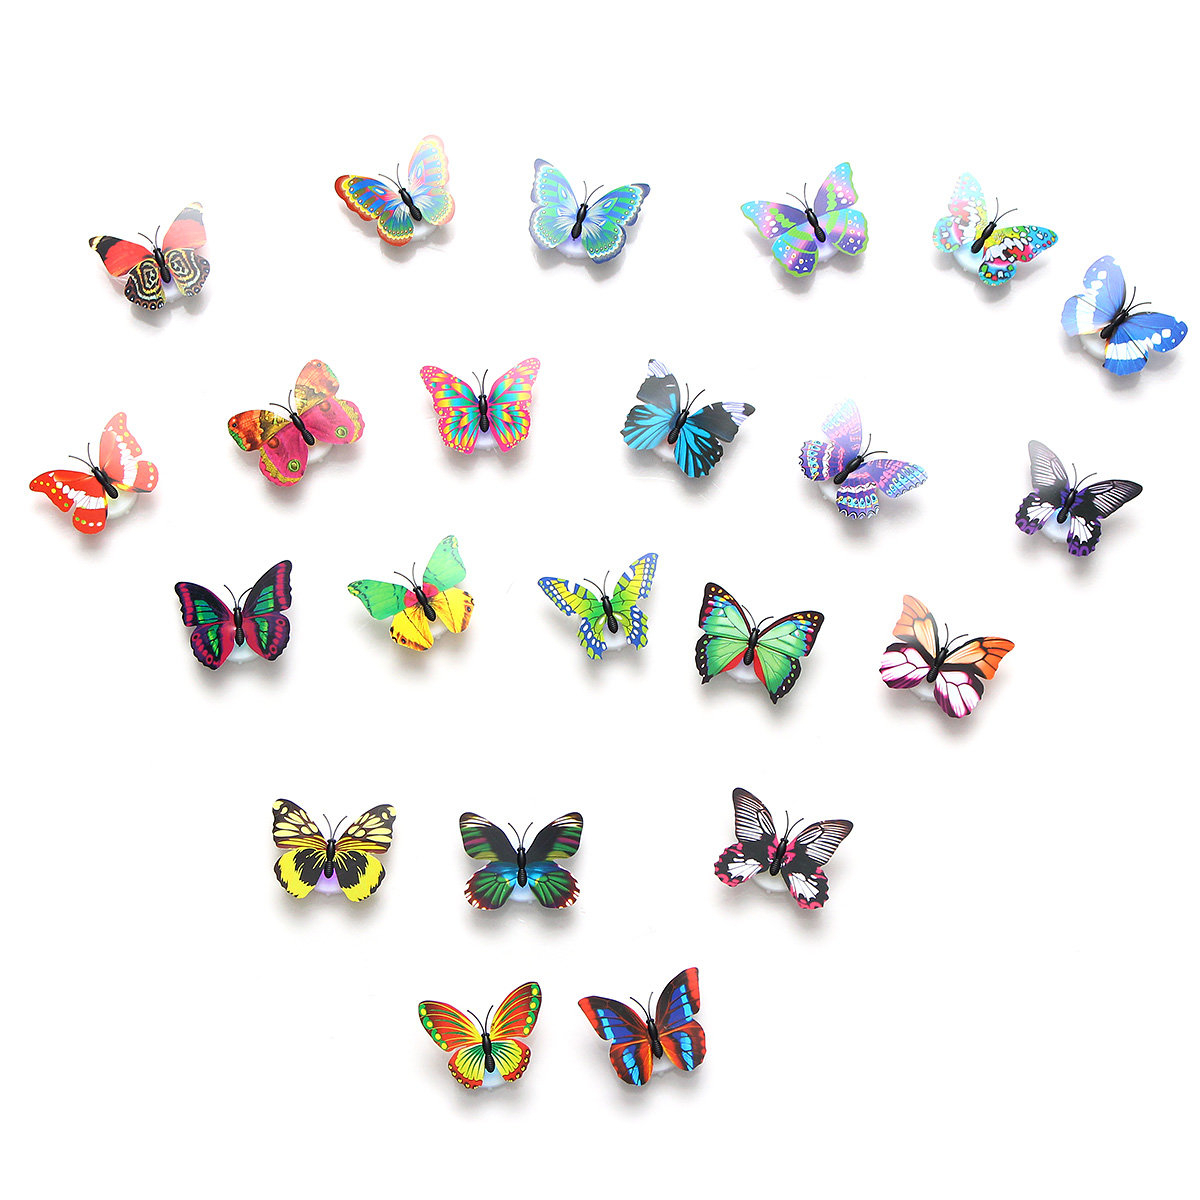 Widely Used 2Pcs Led Glowing 3D Butterfly Night Light Sticker Art Design Mural In 3 Piece Capri Butterfly Wall Decor Sets (View 20 of 20)